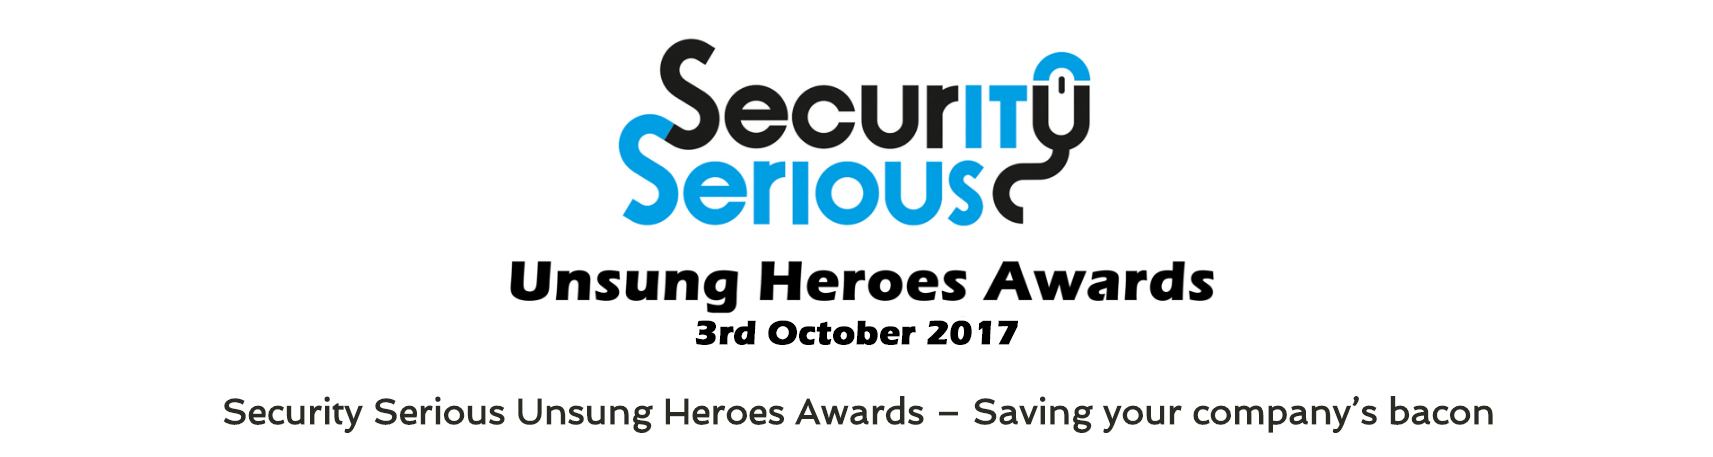 Unsung Heroes Banner 2017